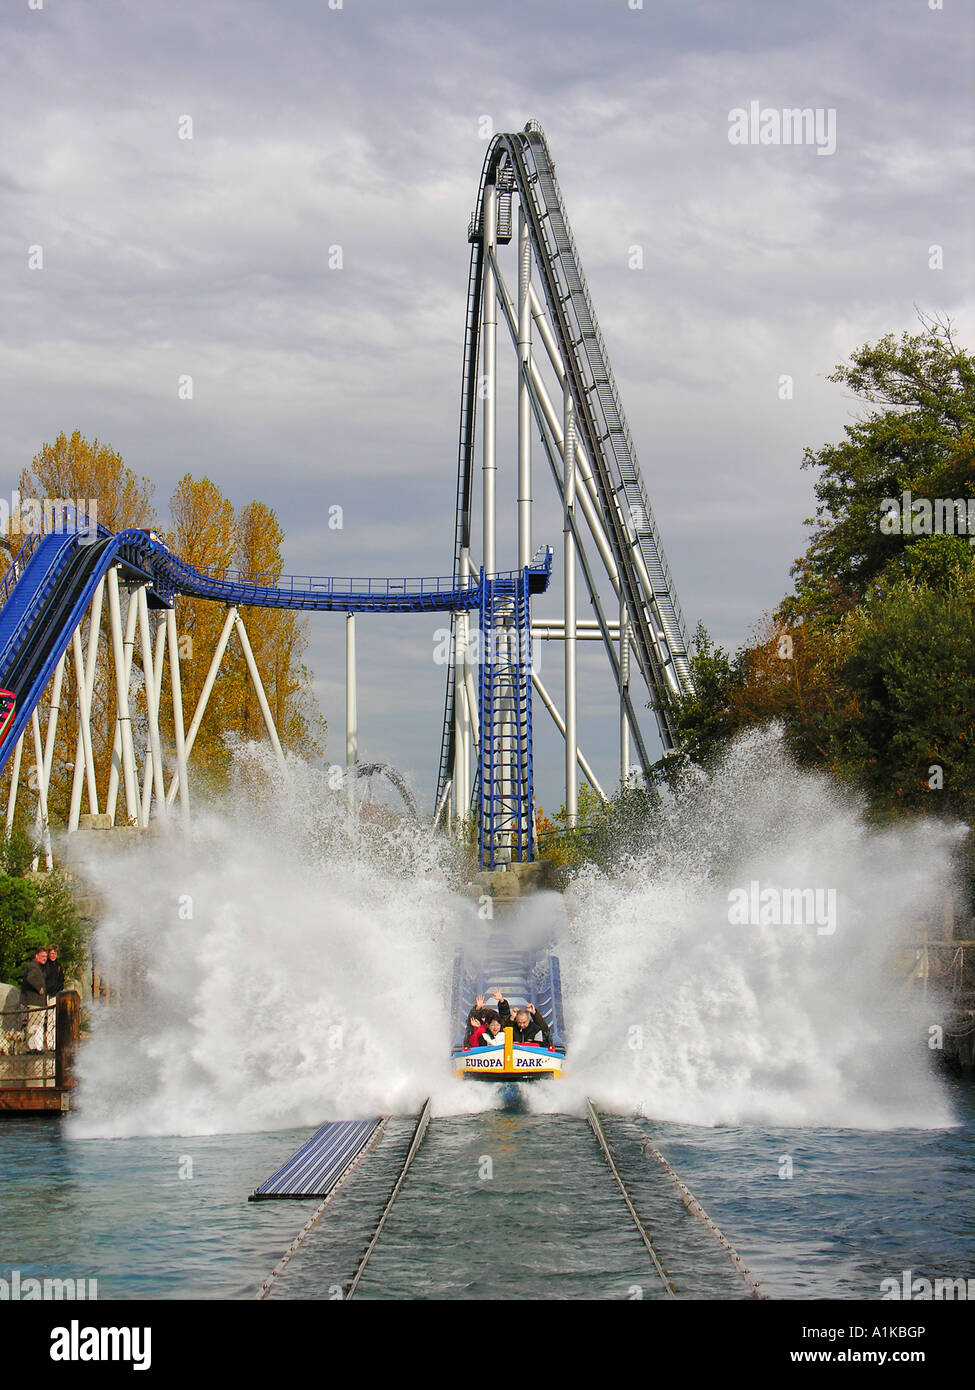 Water slide Poseidon and roller coaster Silverstar in the Europapark Rust, Baden-Wuerttemberg, Germany - Stock Image